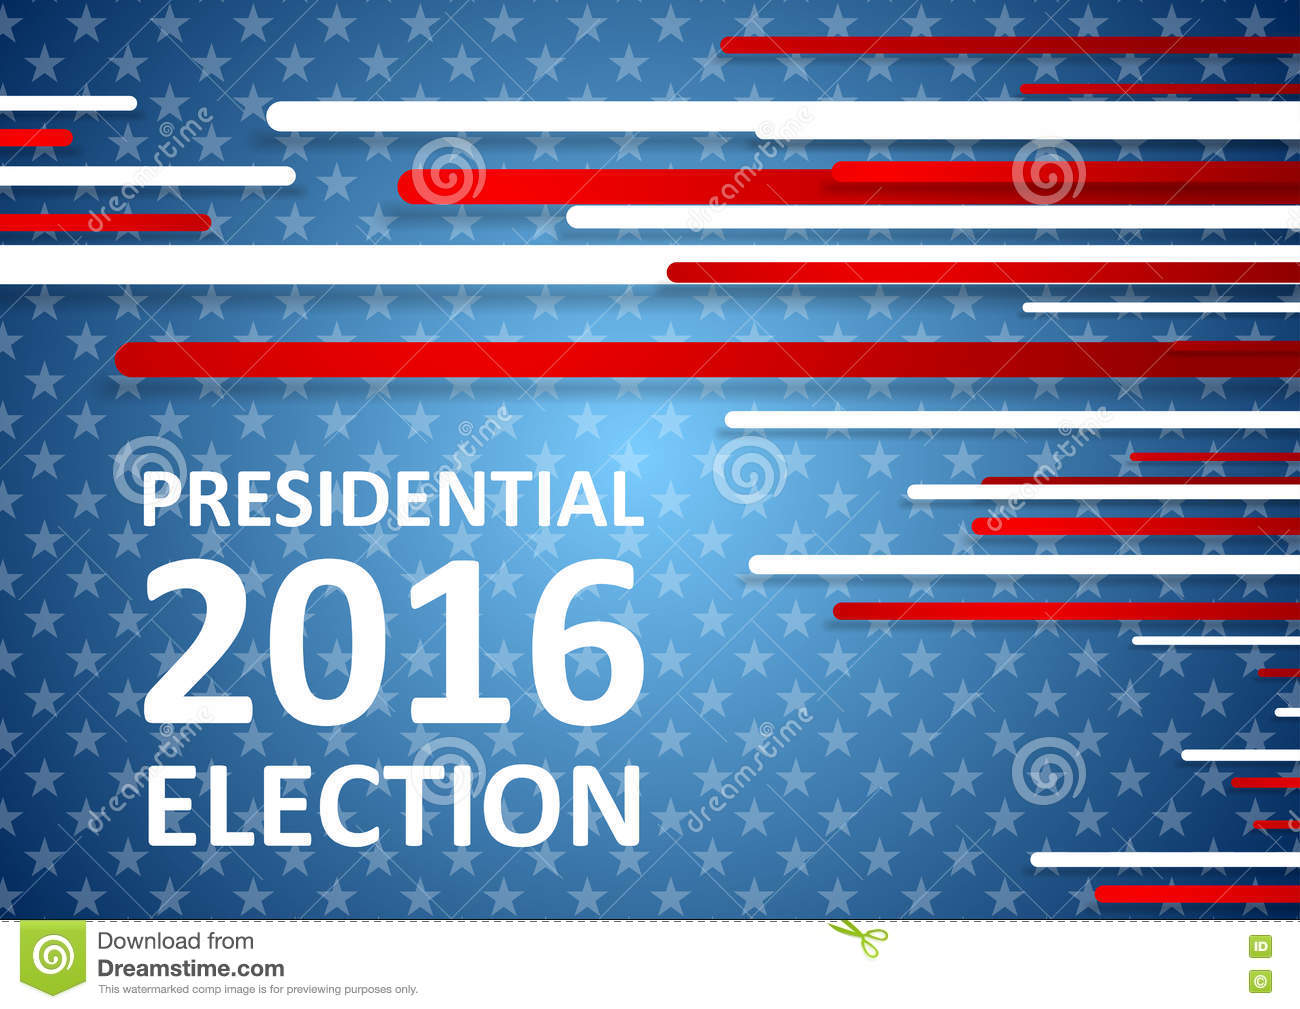 USA Presidential Election 2016 Brochure Template Vector – Election Brochure